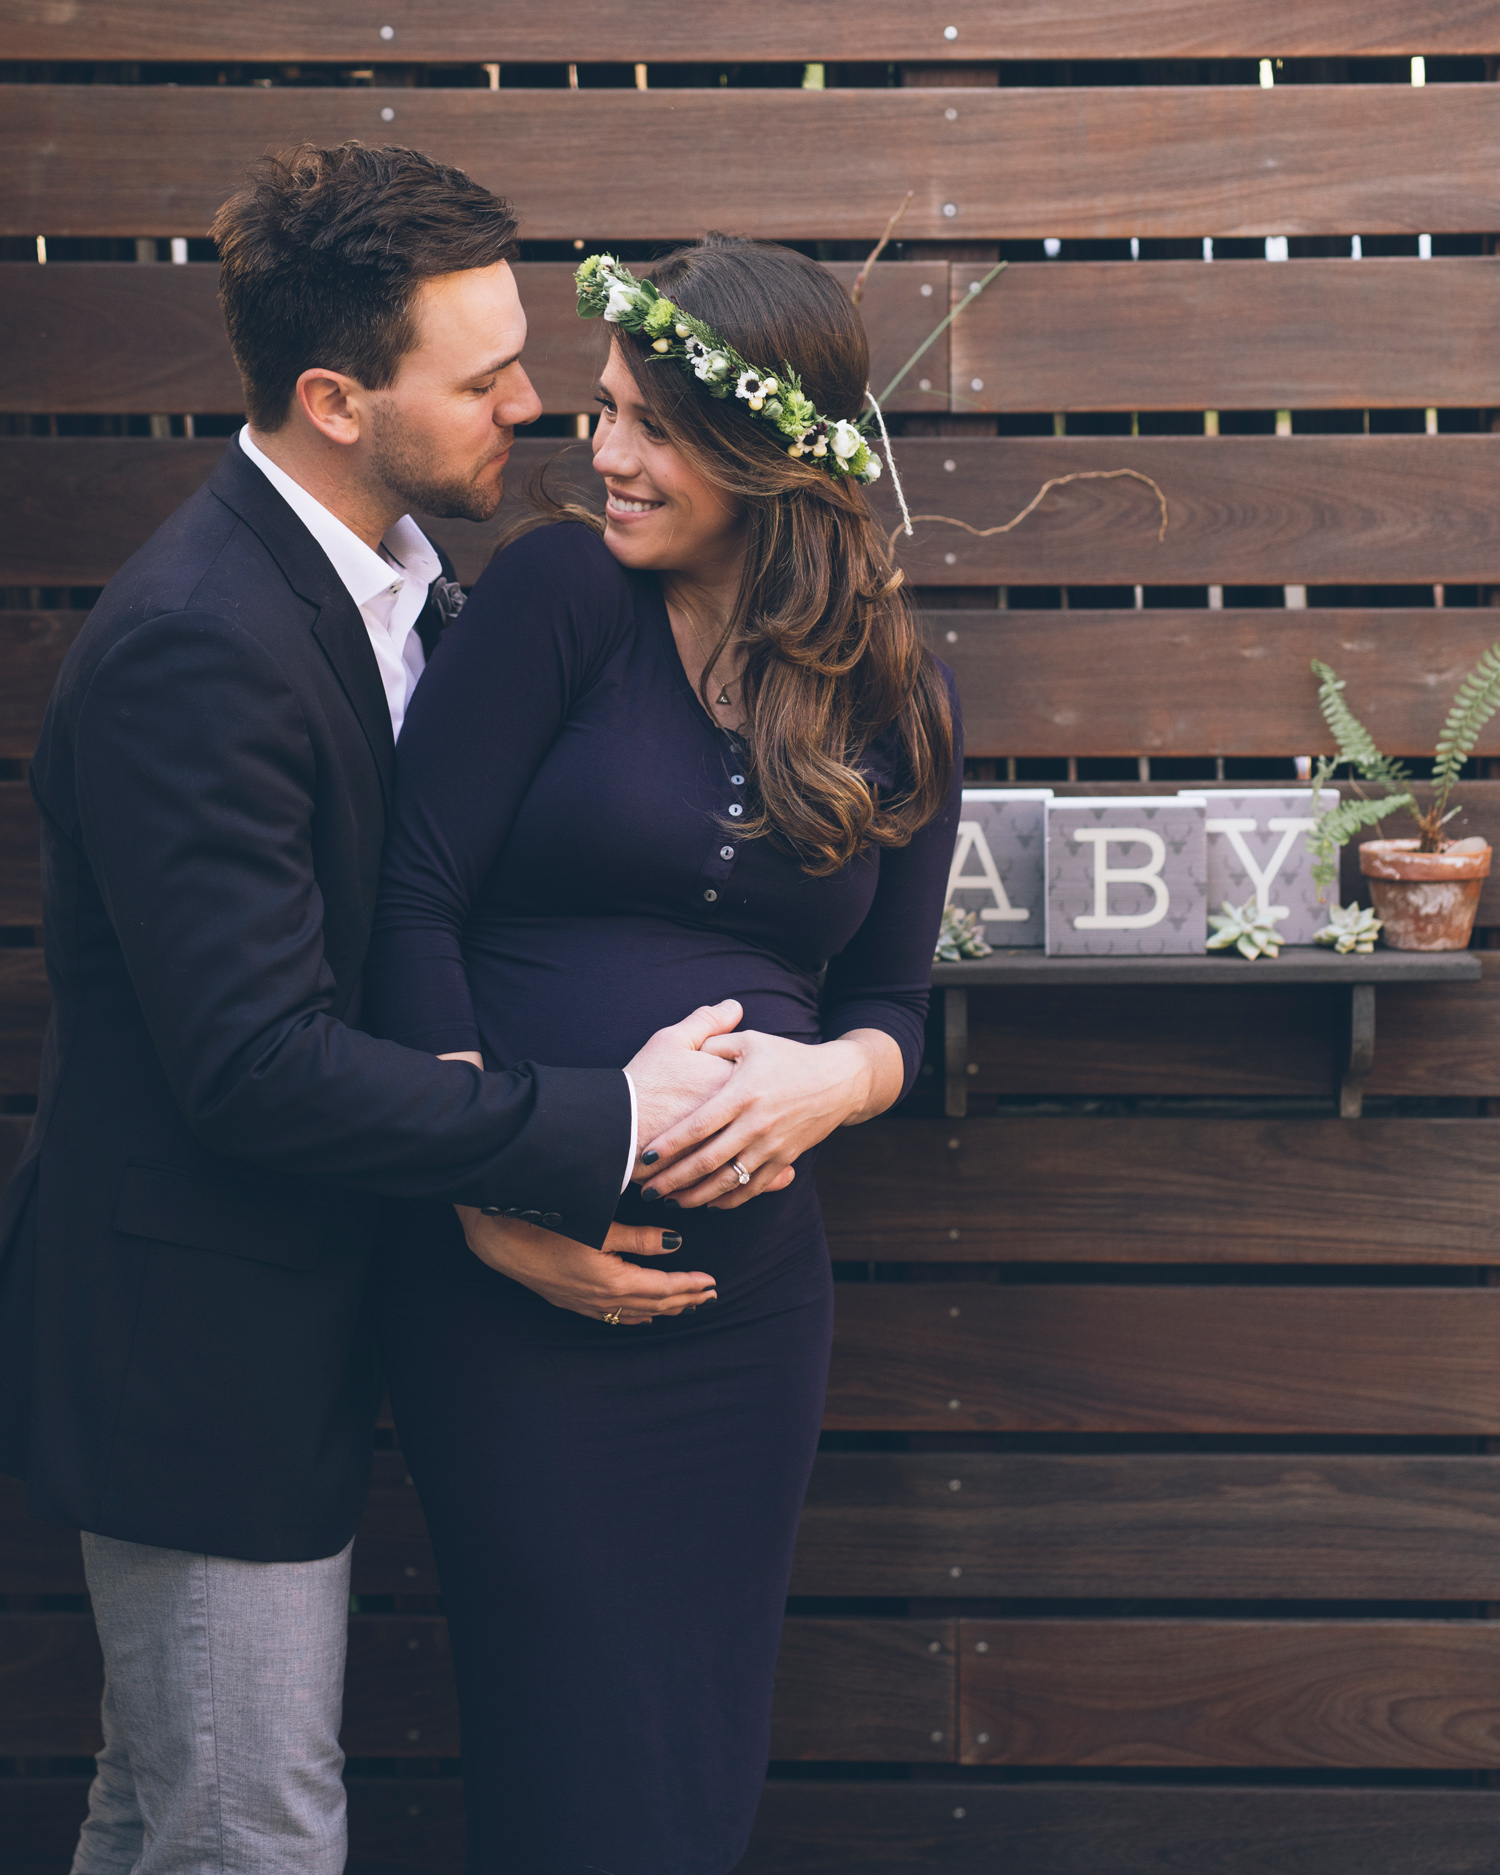 husband-and-wife-looking-at-each-other-lovingly-during-maternity-session-in-oakland.jpg